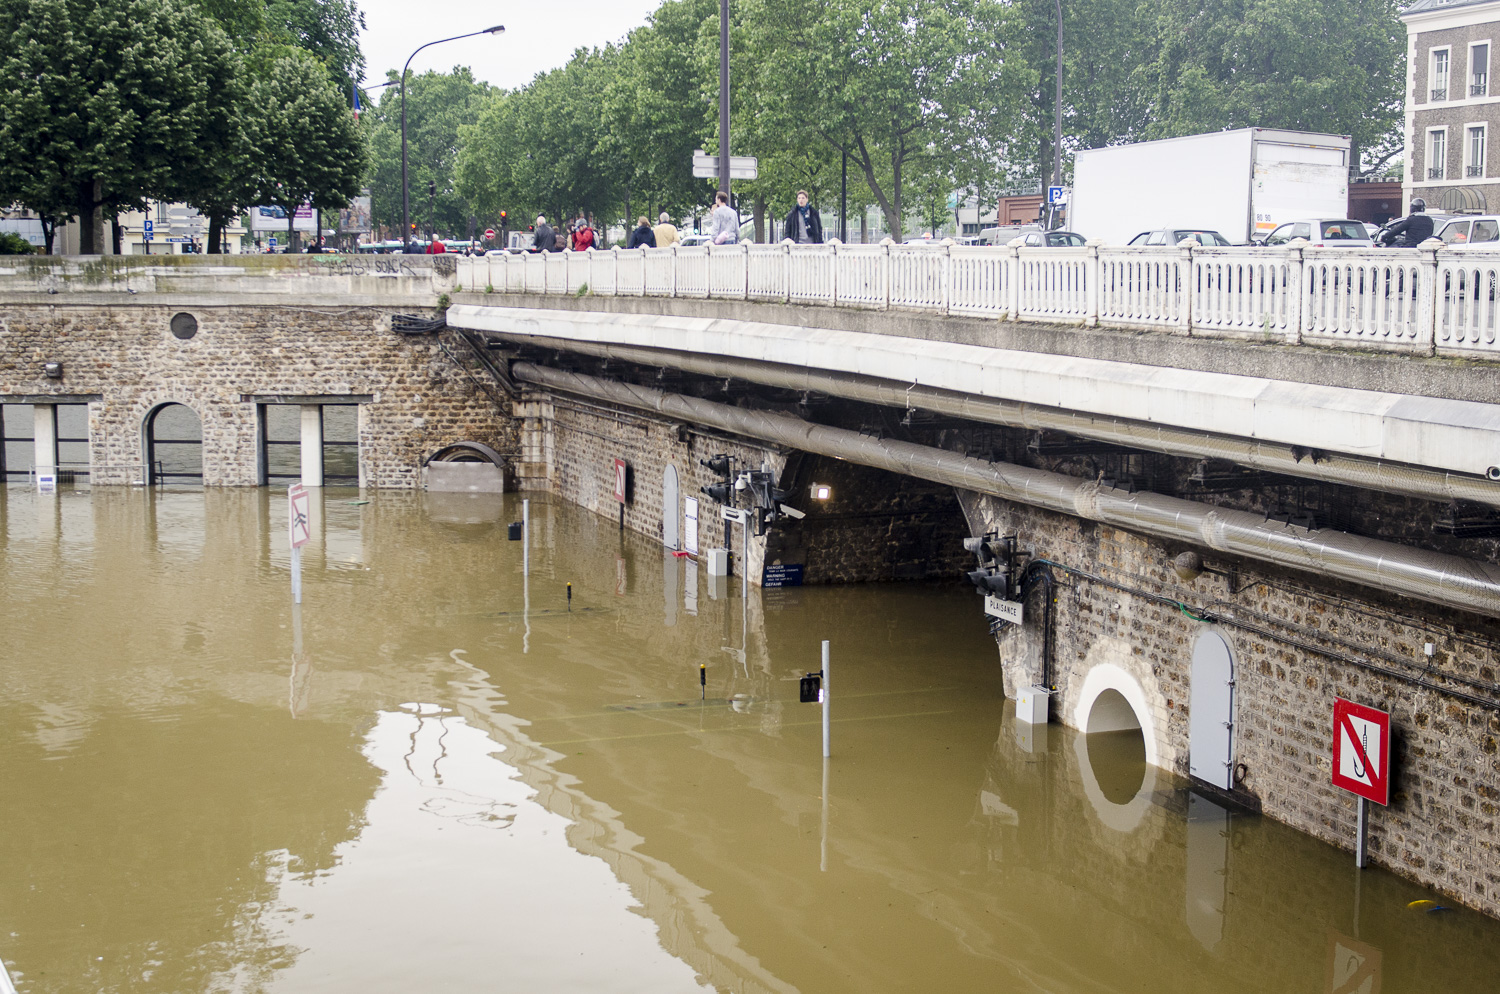 The bassin de l'Arsenal near Bastille wasn't spared either. The Morland Lock was completely submerged, only the pedestrian crossing lights remained above water. Needless to say, all boat traffic on the Canal and Seine were cancelled.   Photo : Alexander J.E. Bradley